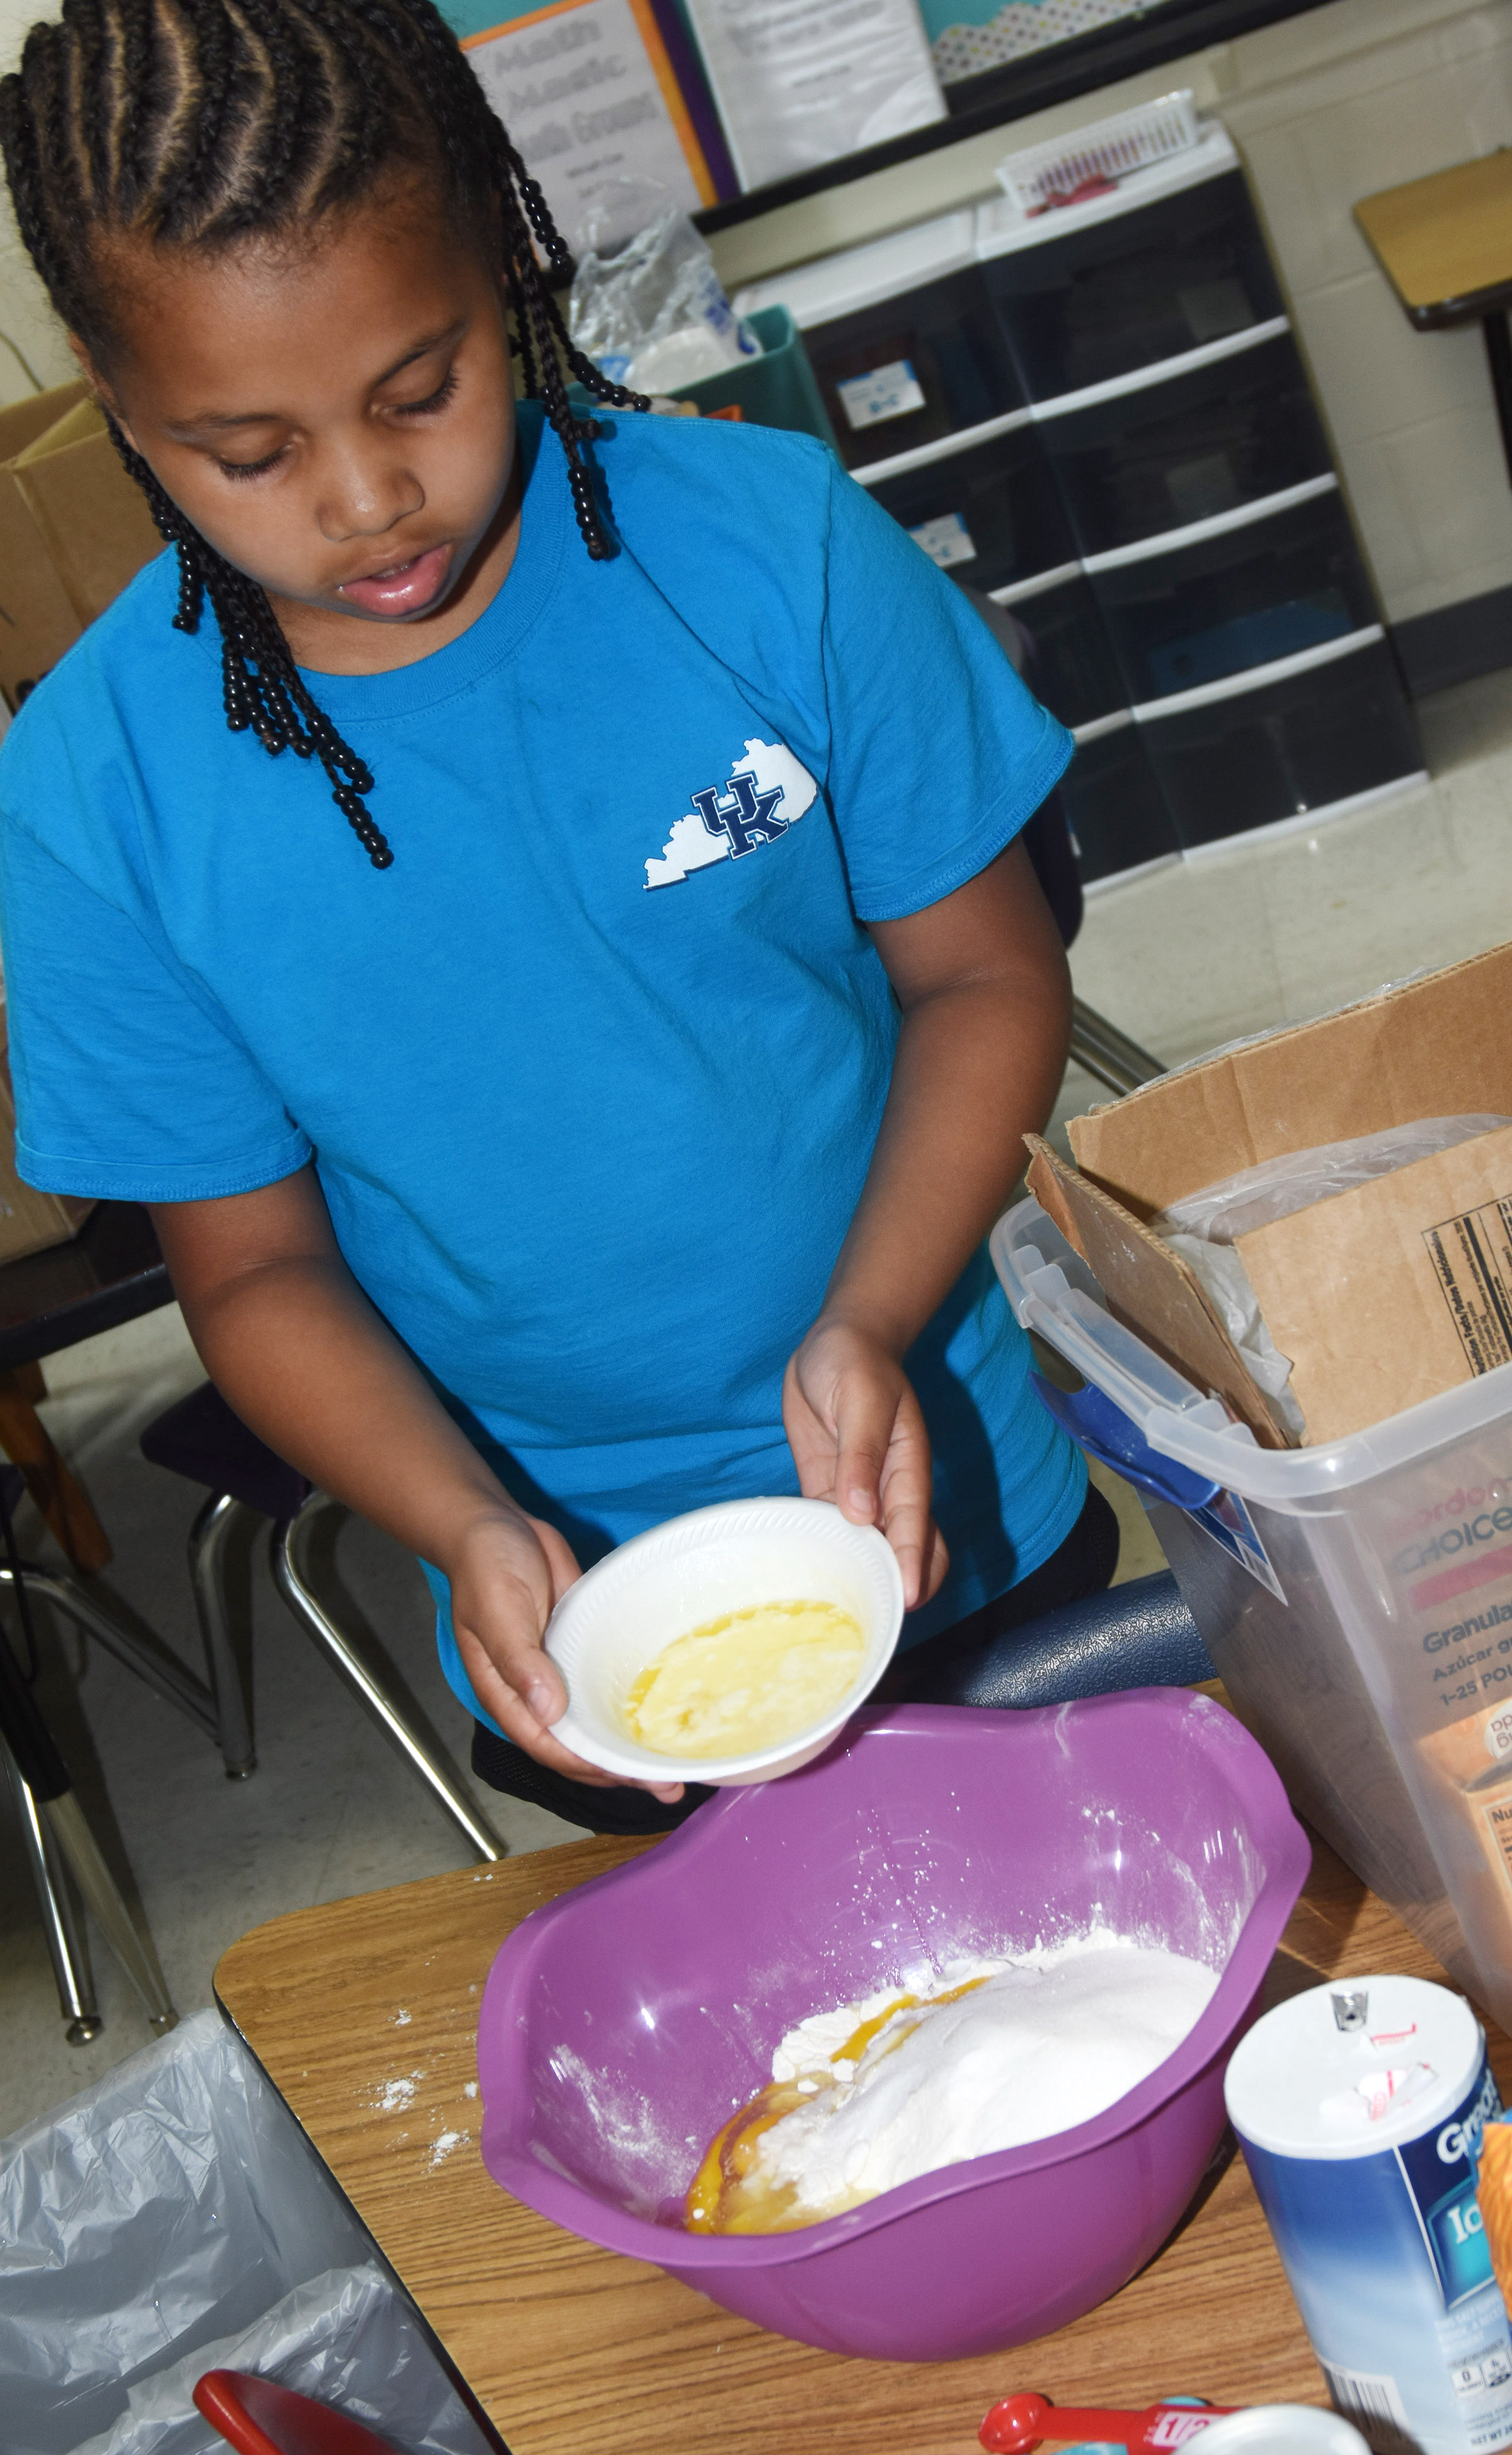 CES second-grader Journey Webb mixes ingredients to make homemade muffins.